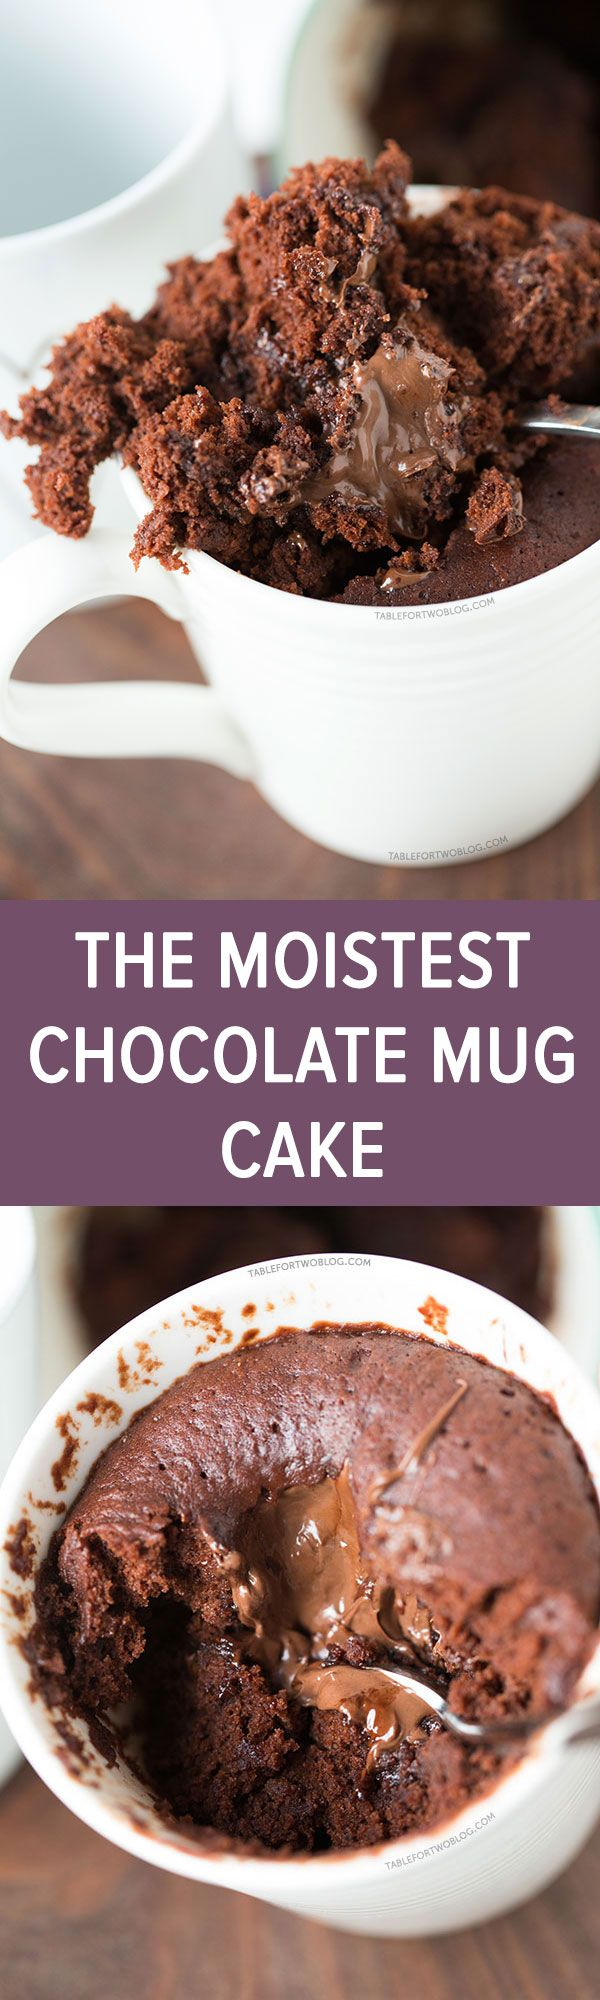 The moistest chocolate mug cake you will ever have! It's NOT spongy like other…